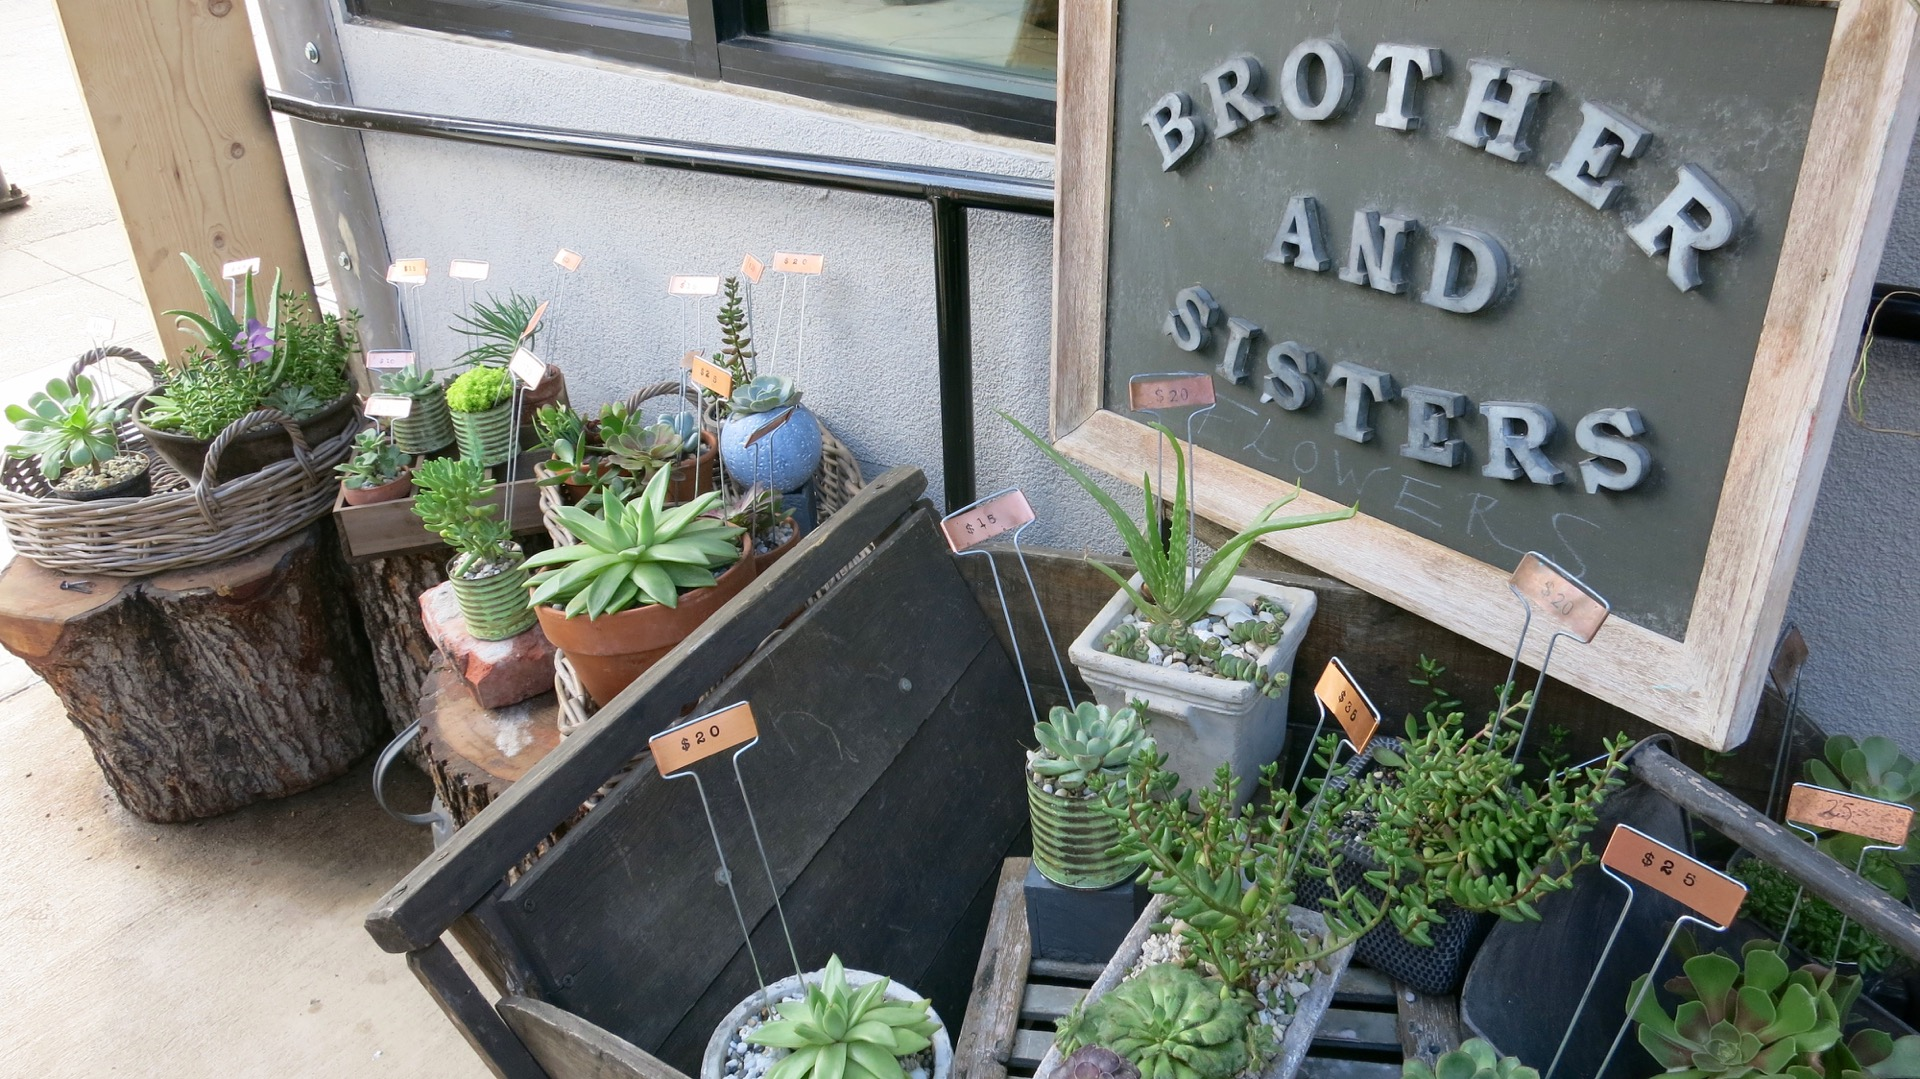 Brother and Sisters' is the cozy flower shop located within the market.